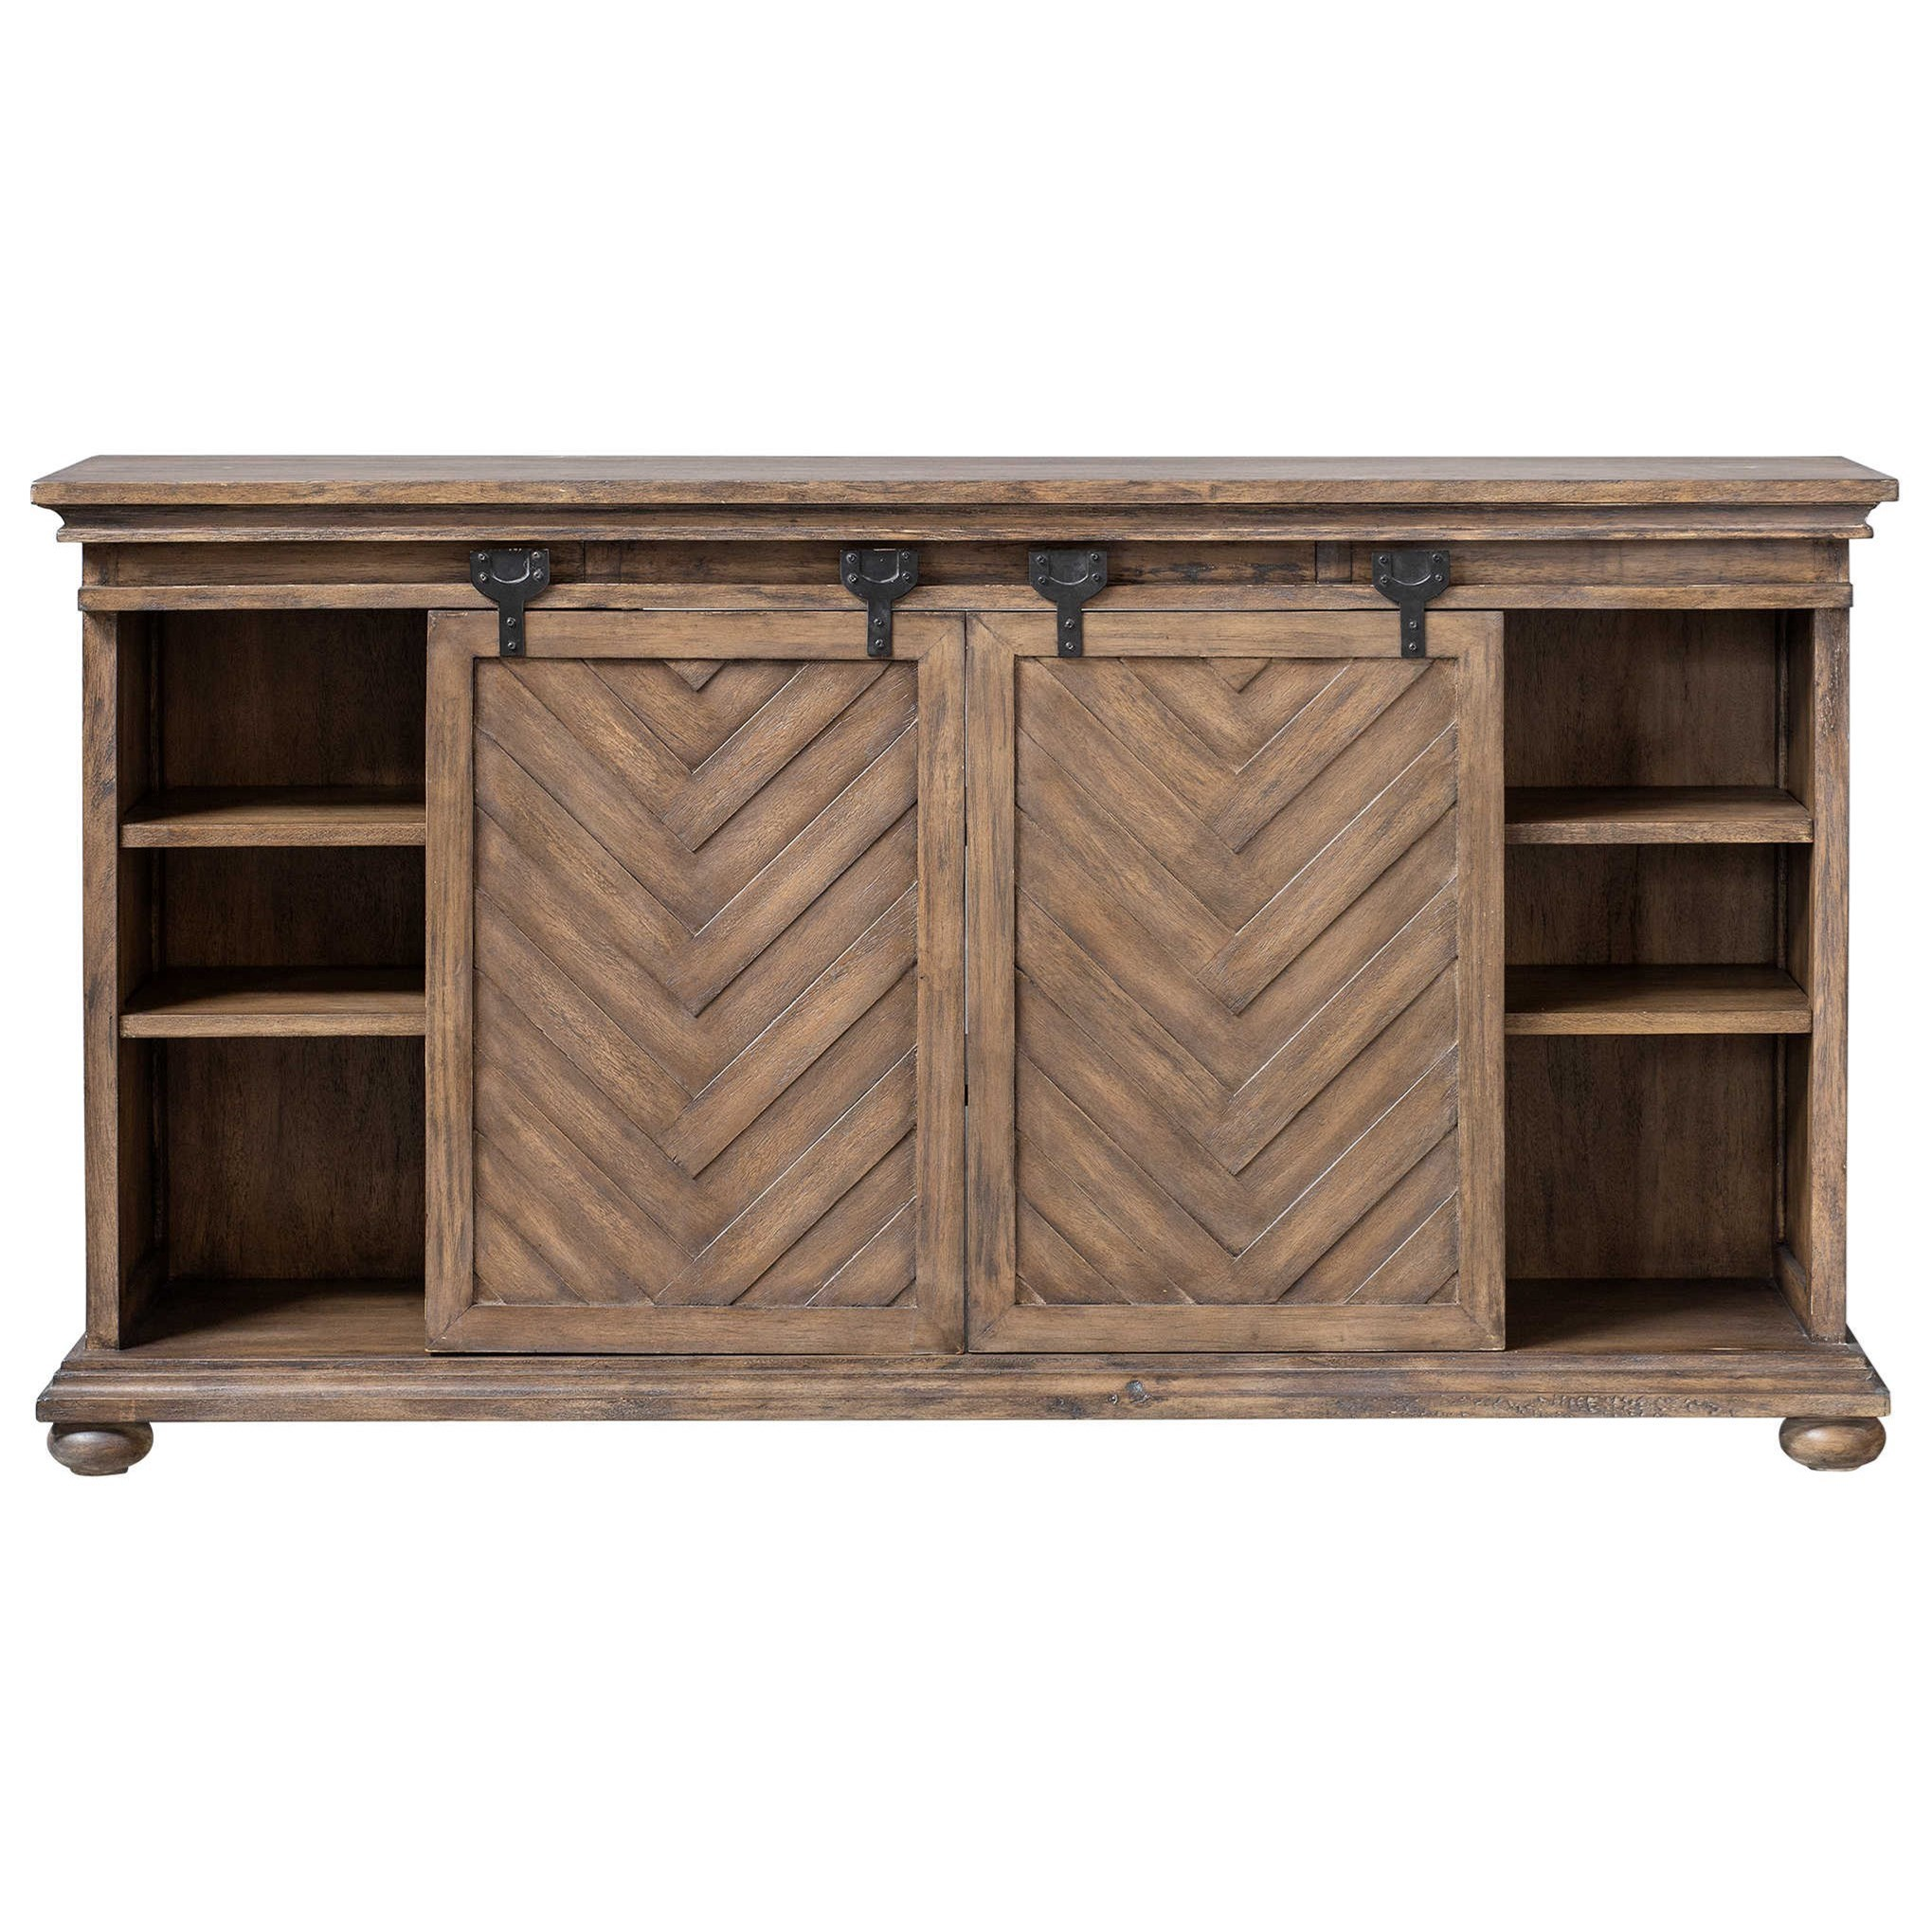 Accent Furniture Primalia Barn Door Media Console by Uttermost at Reid's Furniture